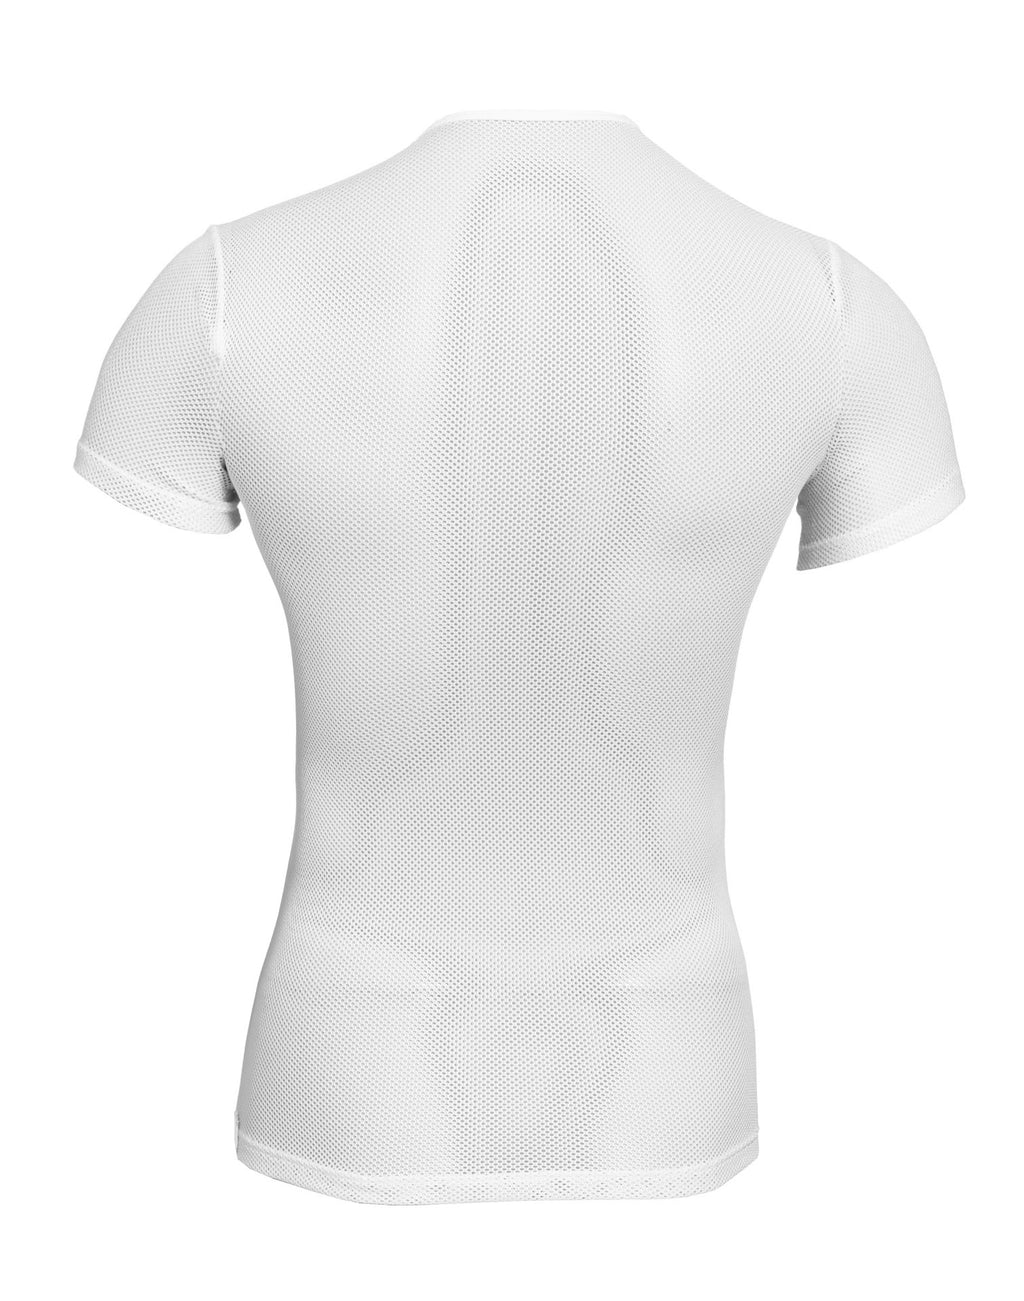 Randwick Unisex Winter Windproof Base Layer